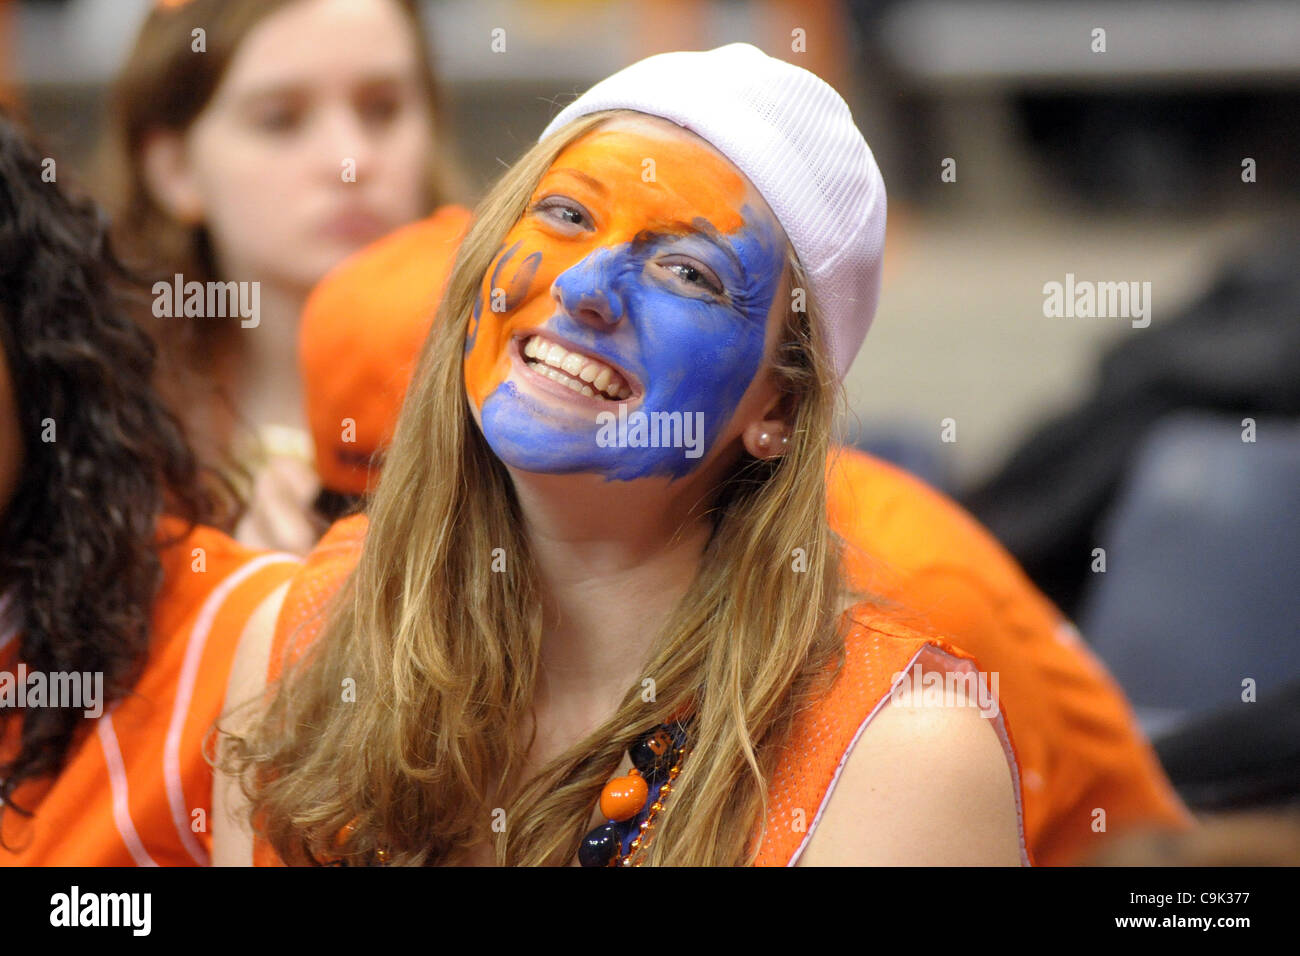 Jan. 16, 2012 - Syracuse, New York, U.S - A Syracuse student shows off her Orange pride before the game against - Stock Image